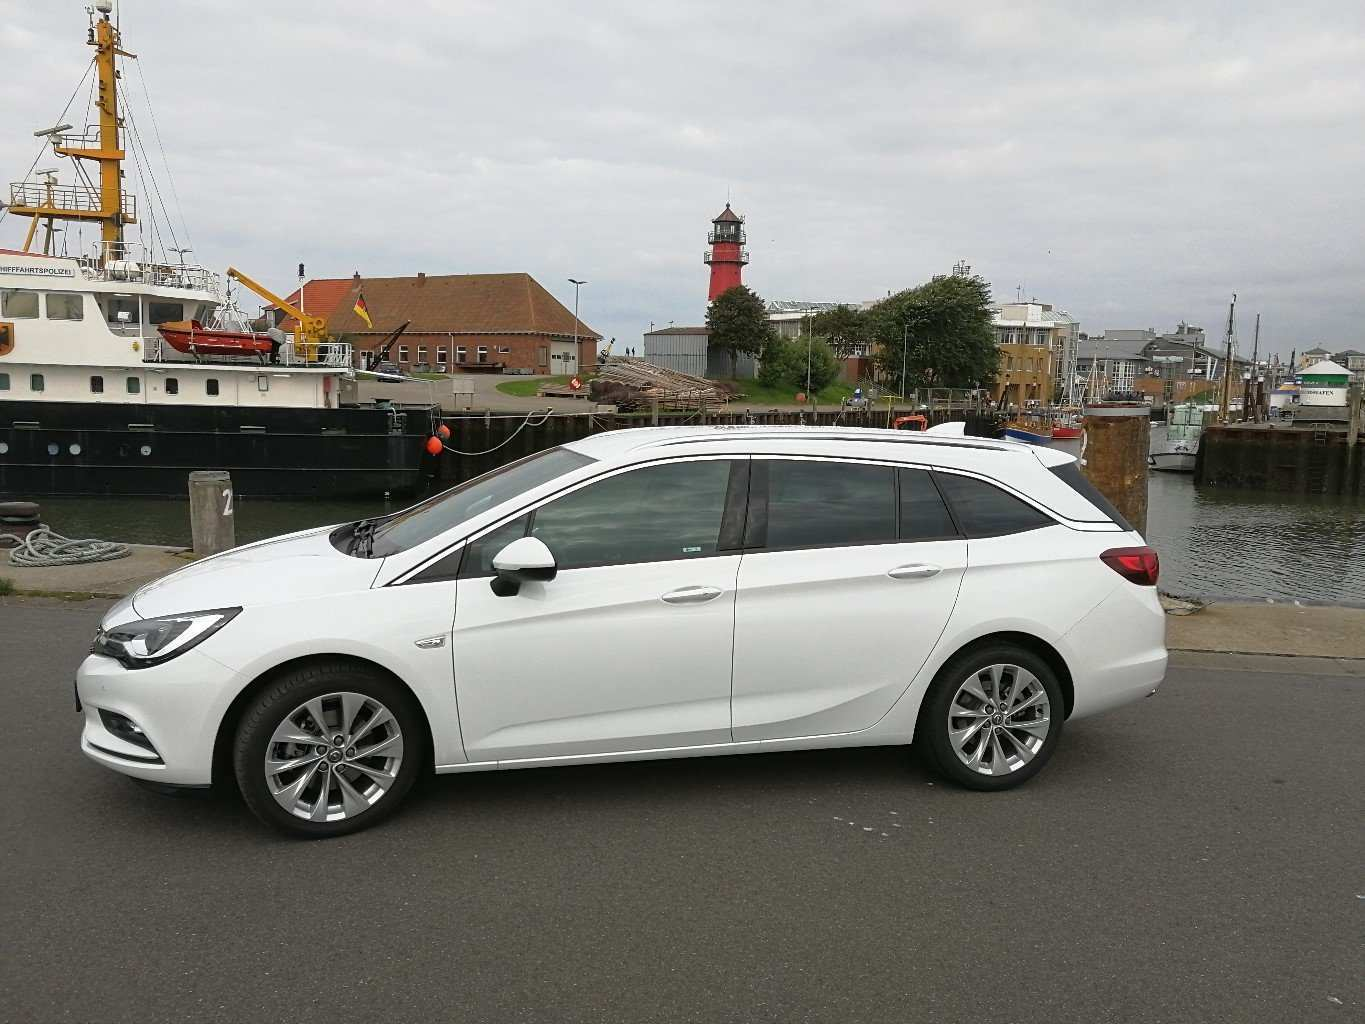 96 All New Opel Astra K Sports Tourer 2020 Performance And New Engine